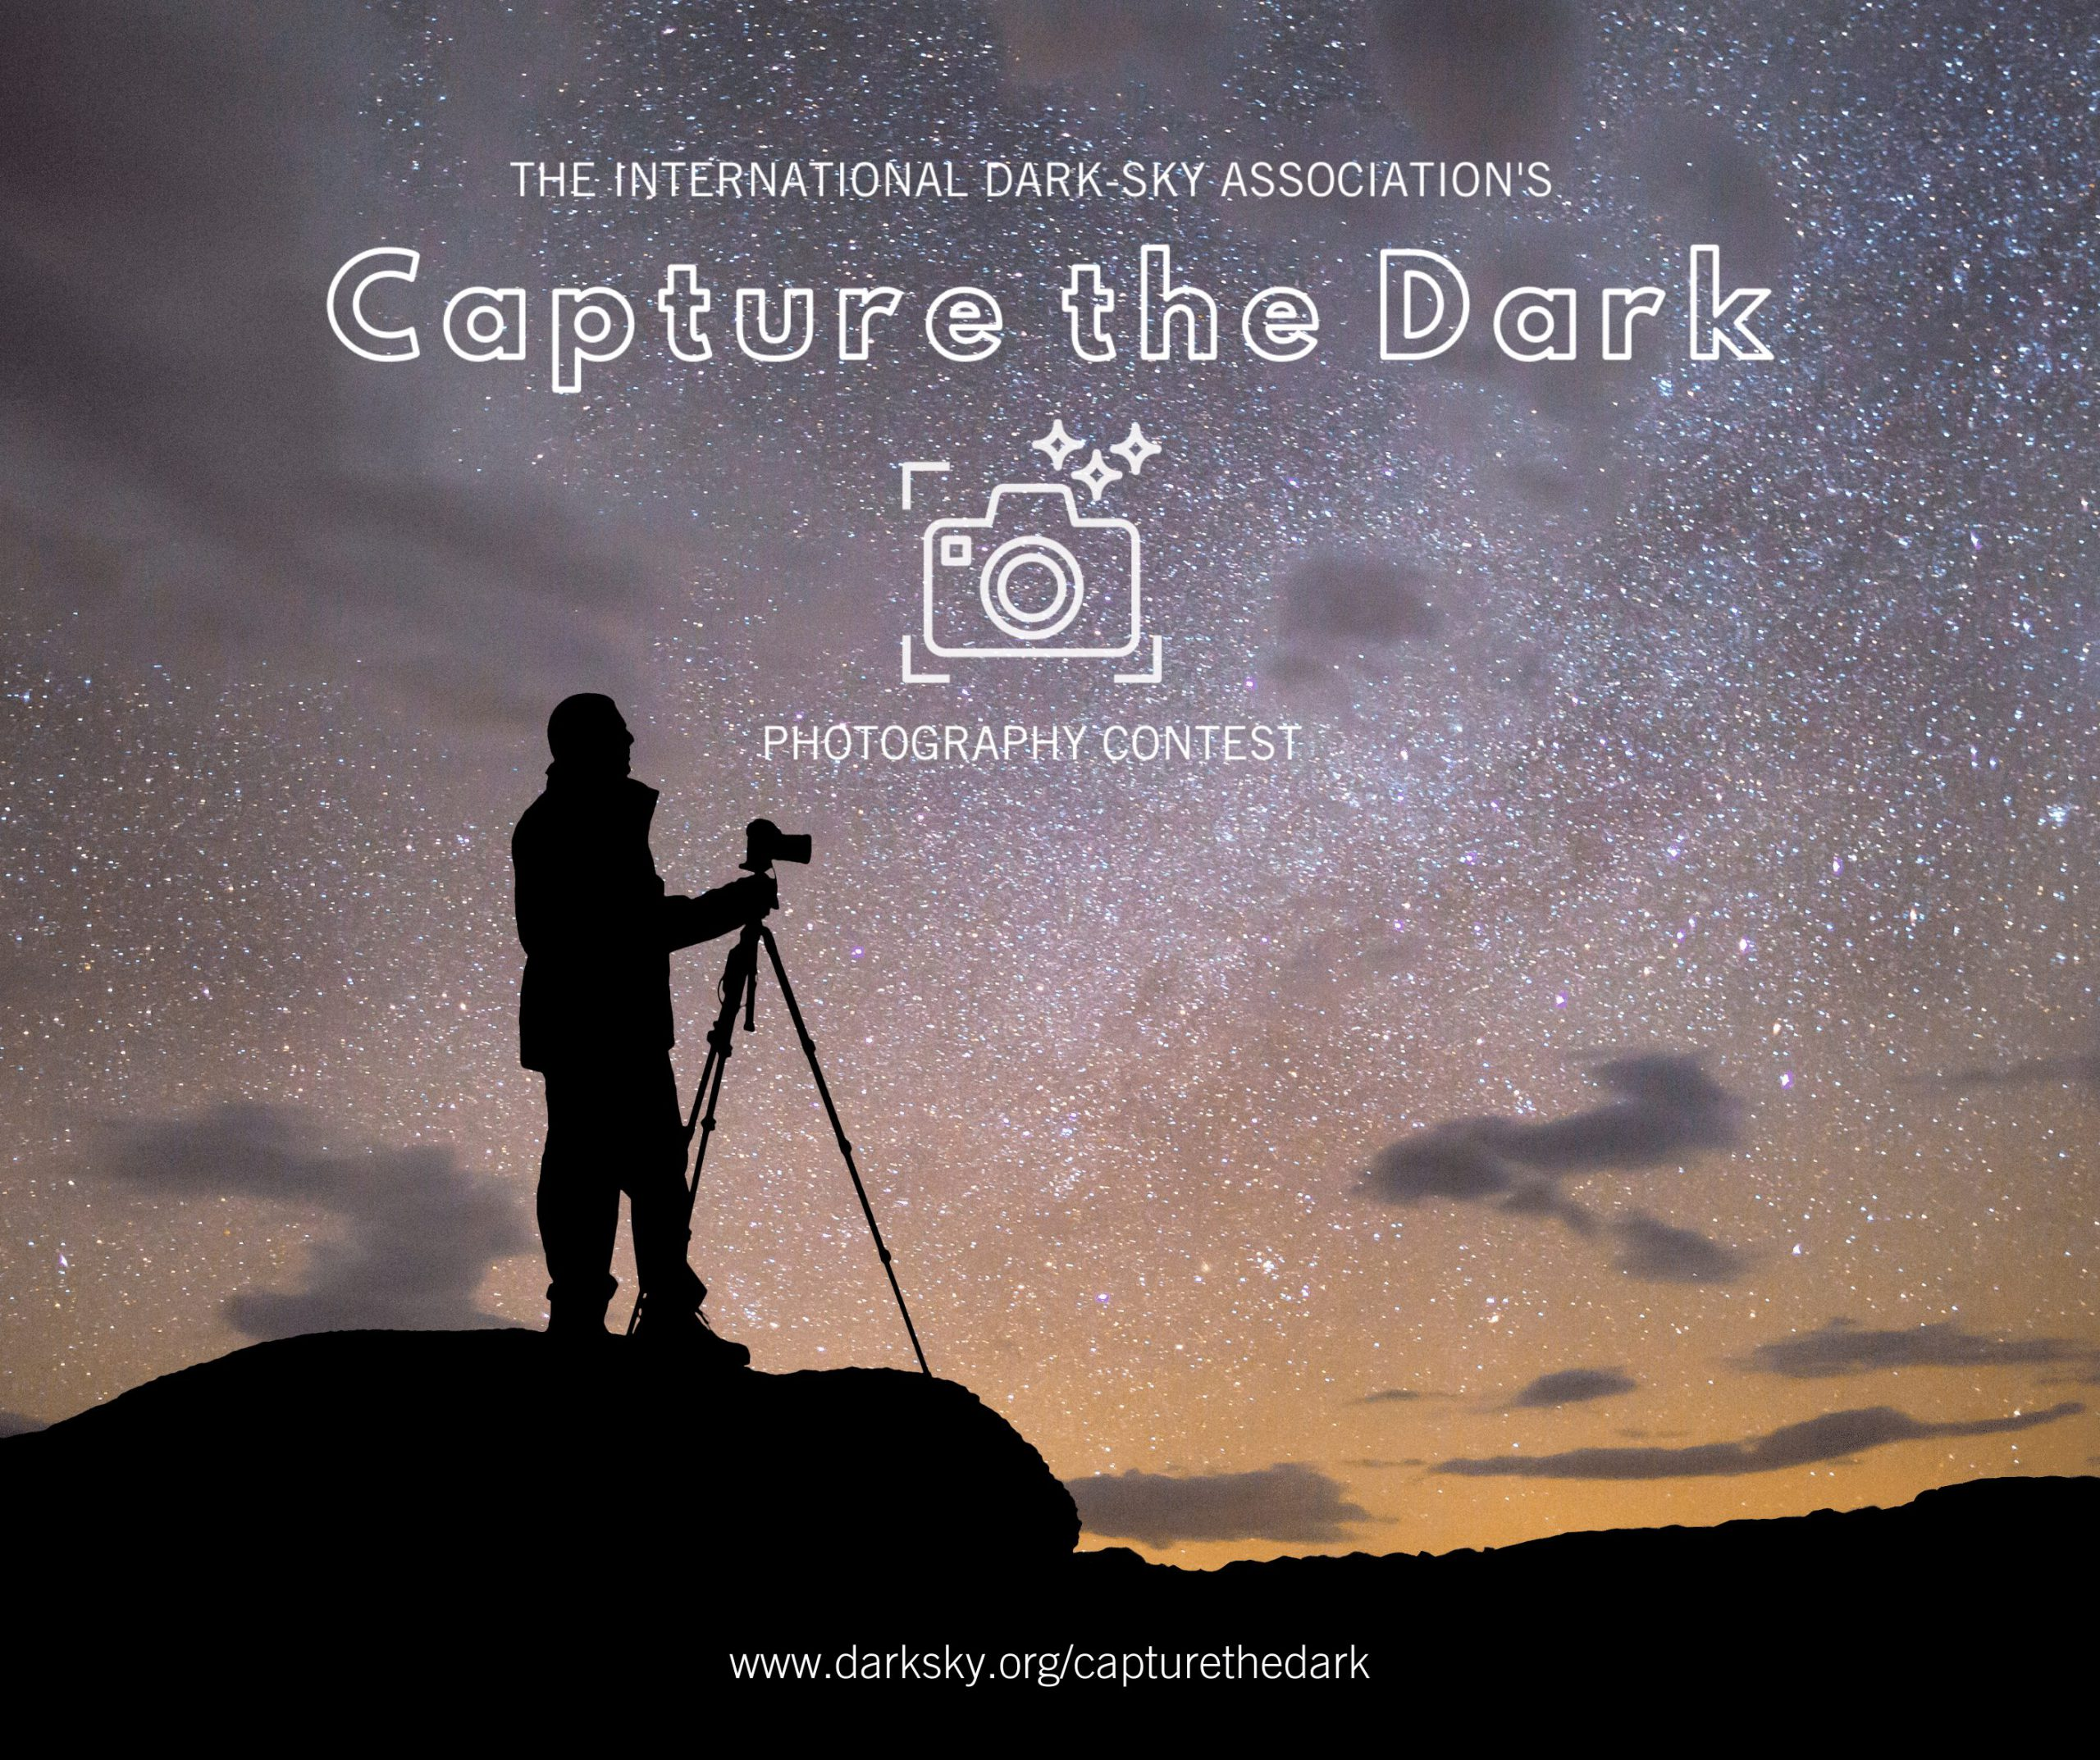 The 2021 Capture the Dark Winners and Honorable Mentions Image